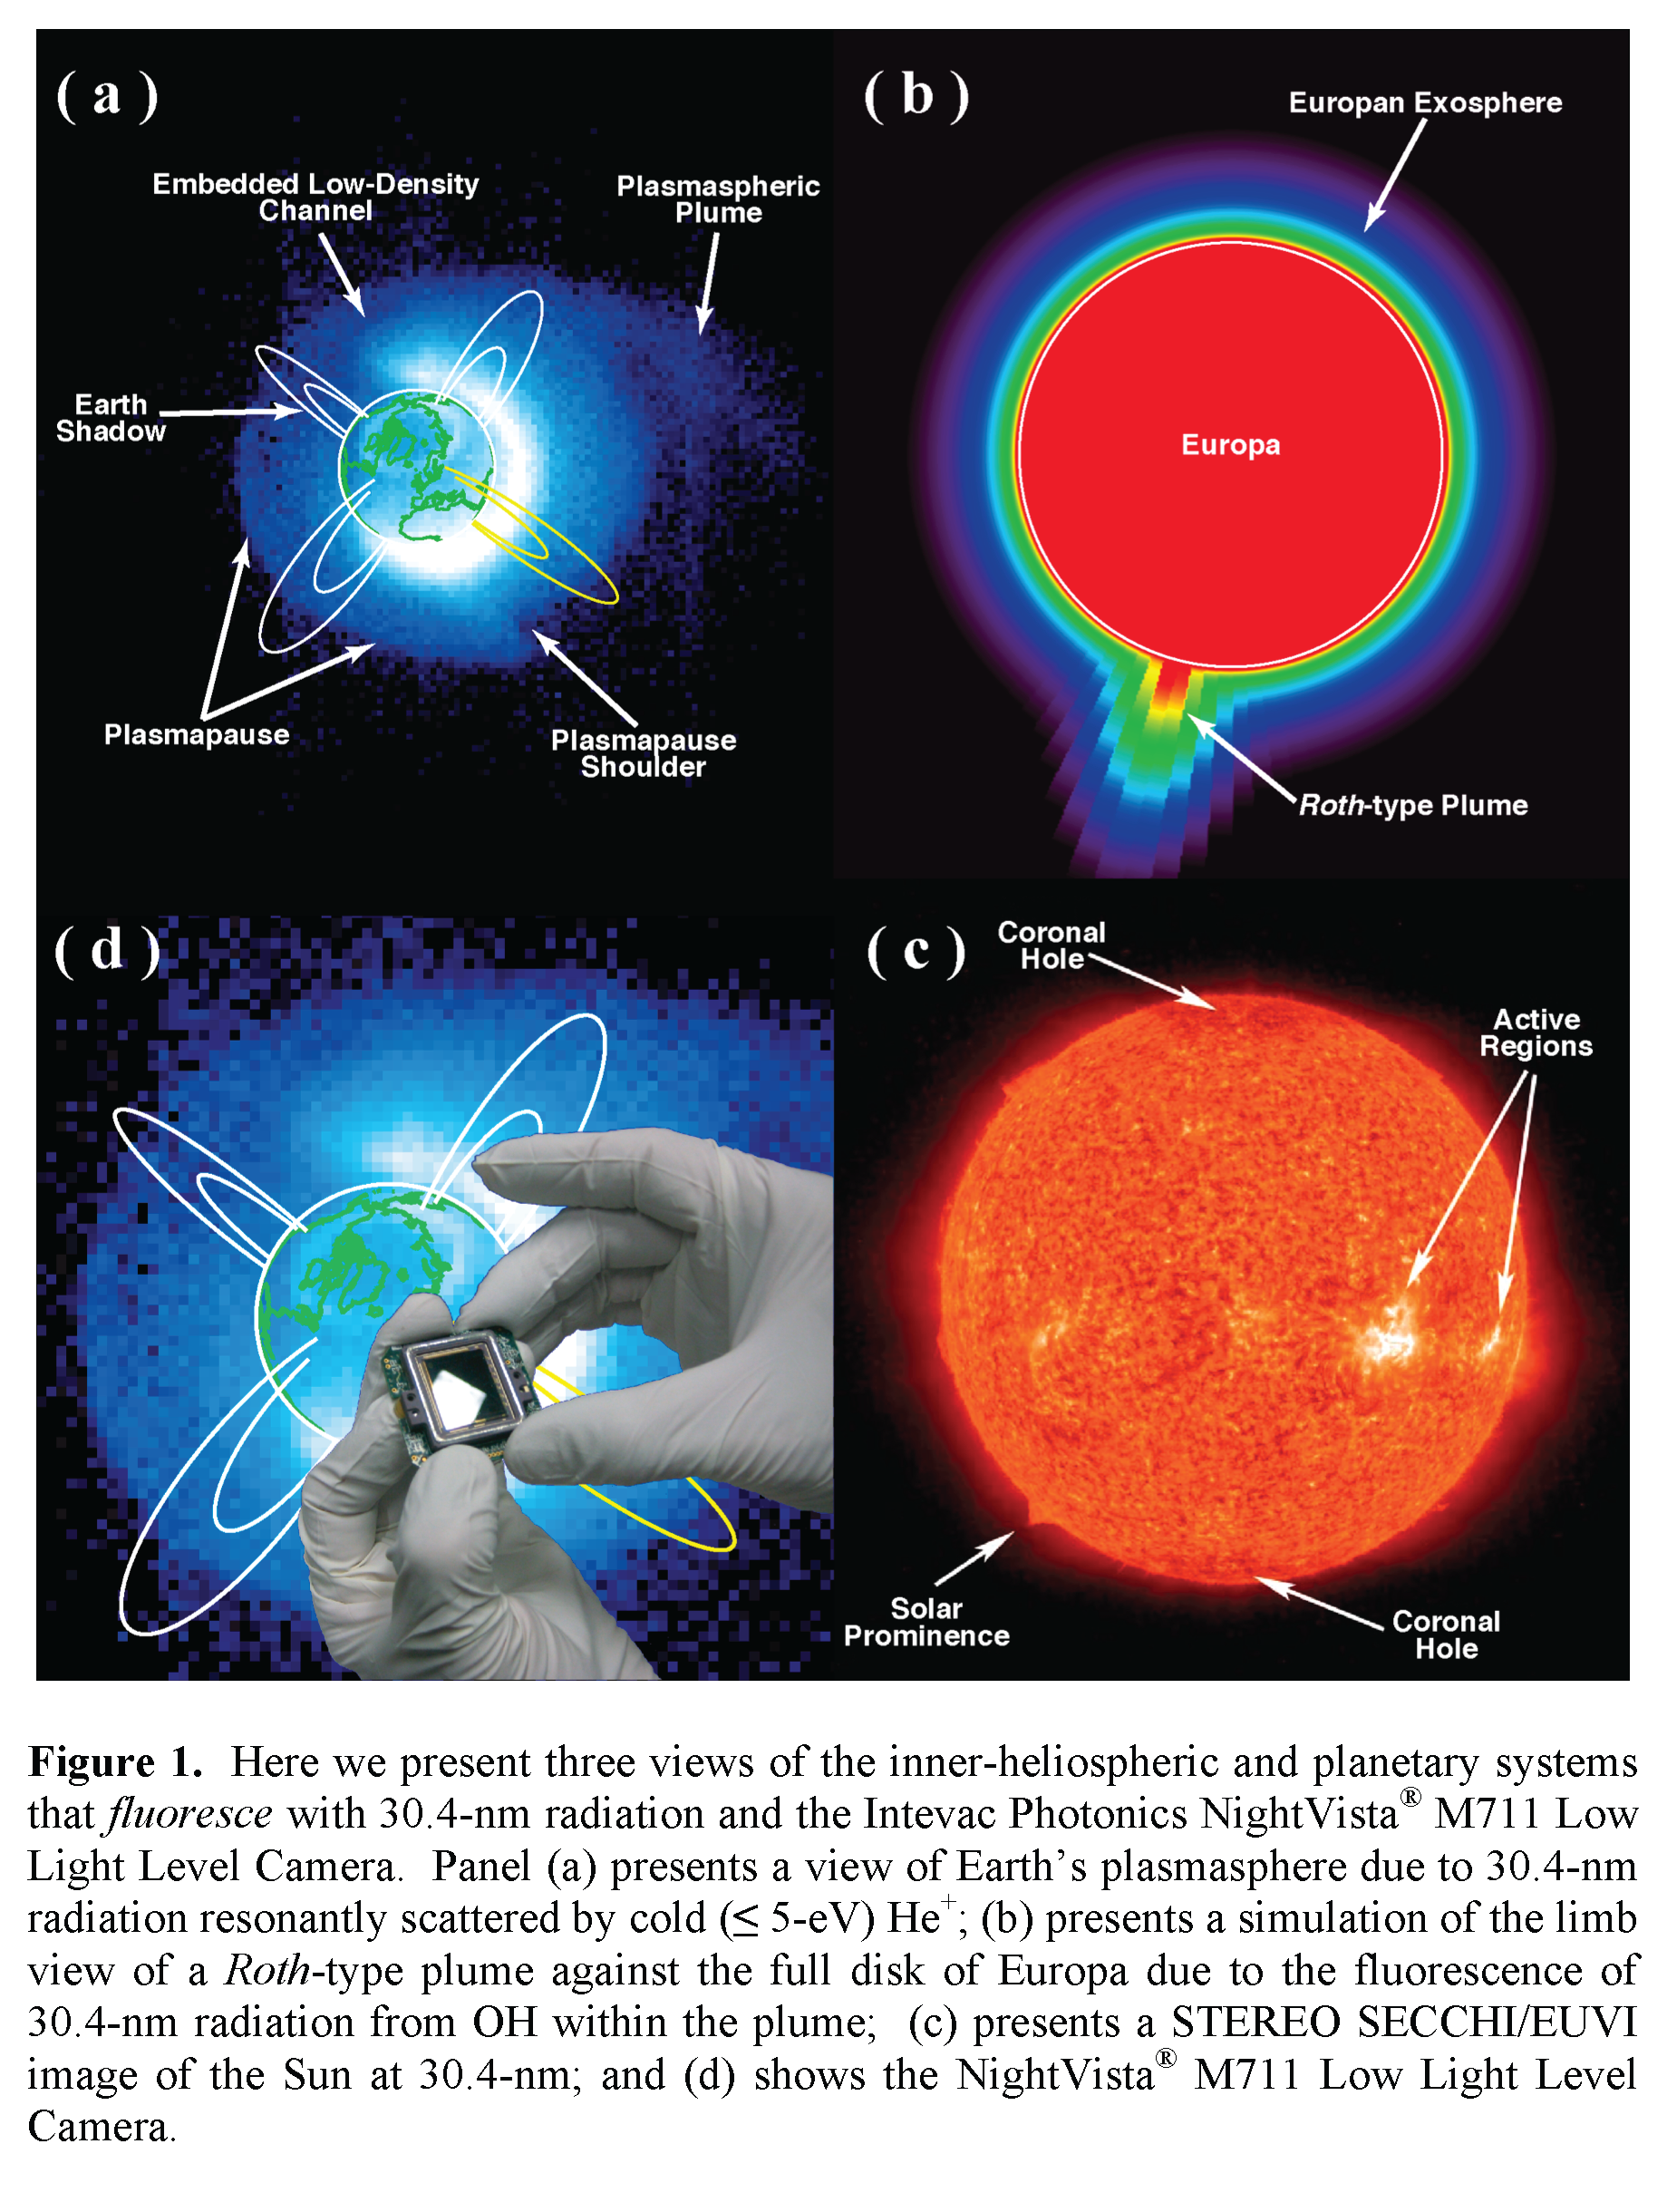 Views of the inner-heliospheric and planetary systems that fluoresce with 30.4-nm radiation and the Intevac Photonics NightVista® M711 Low Light Level Camera